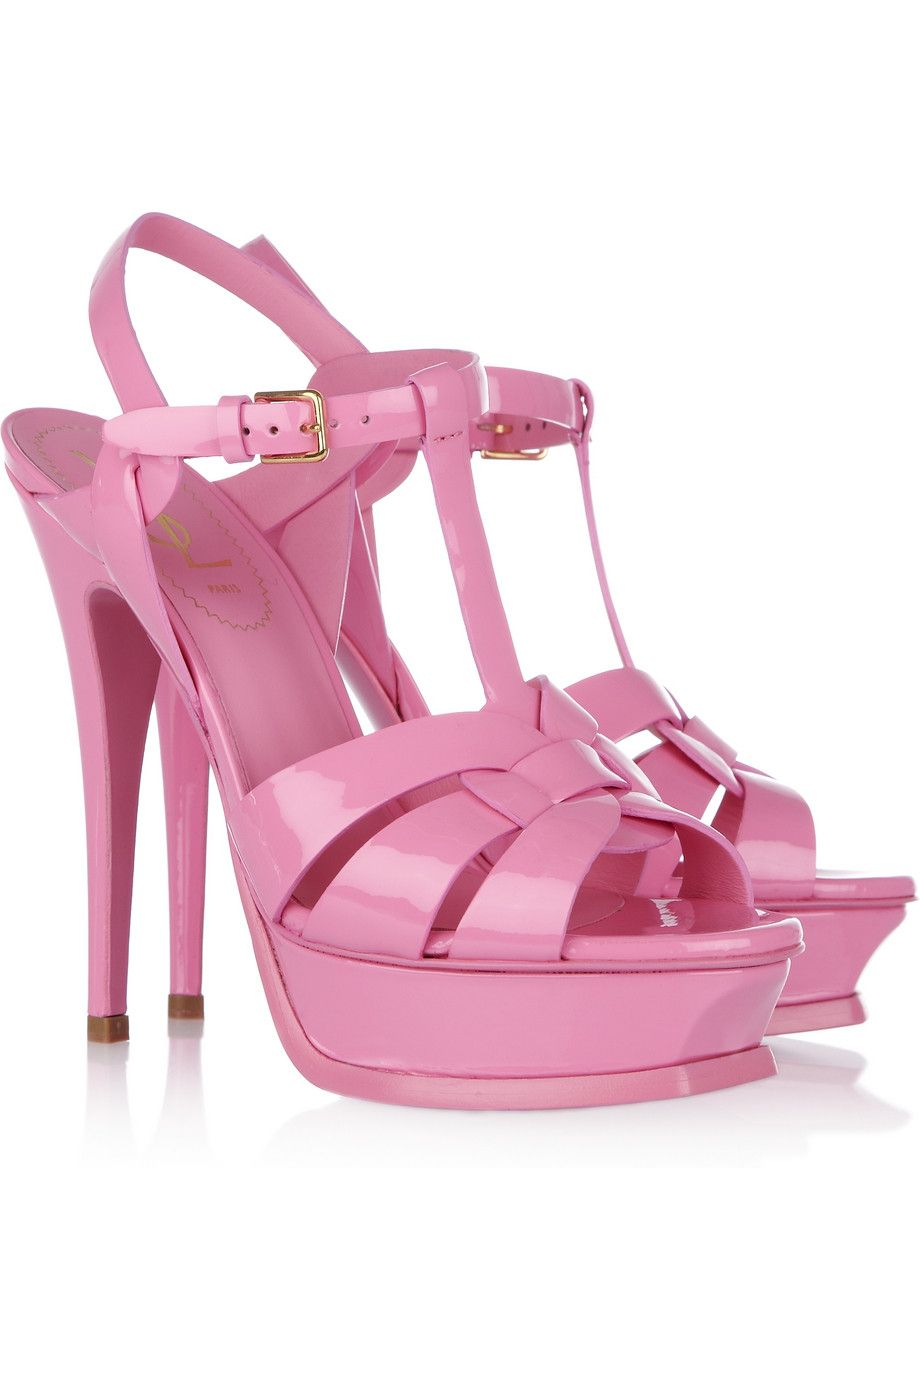 Ysl sandals shoes - Yves Saint Laurent Tribute Patent Leather Sandals My Husband Fell In Love With This